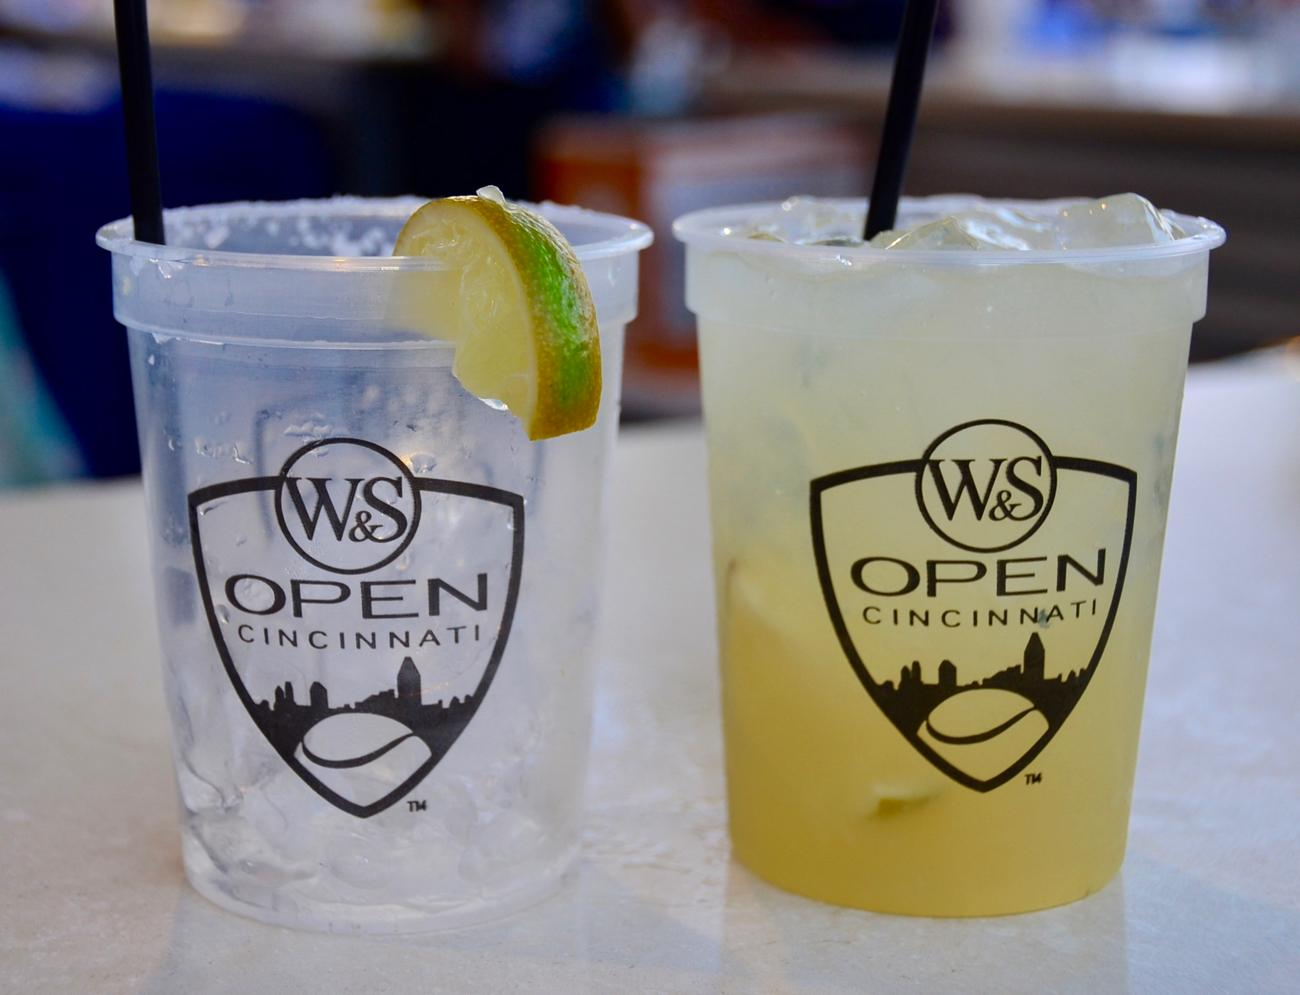 It was an incredible week of tennis at the 2017 Western & Southern Open. Two first-time Cincy winners were crowned, Grigor Dimitrov for the men and Garbine Muguruza for the women. Meanwhile, for those who wanted a break from the tennis action on the court, there was always plenty to do outside of the stadiums. From live music to amazing food and drinks to the stellar people-watching, it's no wonder this is one of our favorite weeks of the year and certainly one of the best ways to close out the summer. Until next time… we'll miss you. / Image: Leah Zipperstein, Cincinnati Refined // Published: 8.21.17